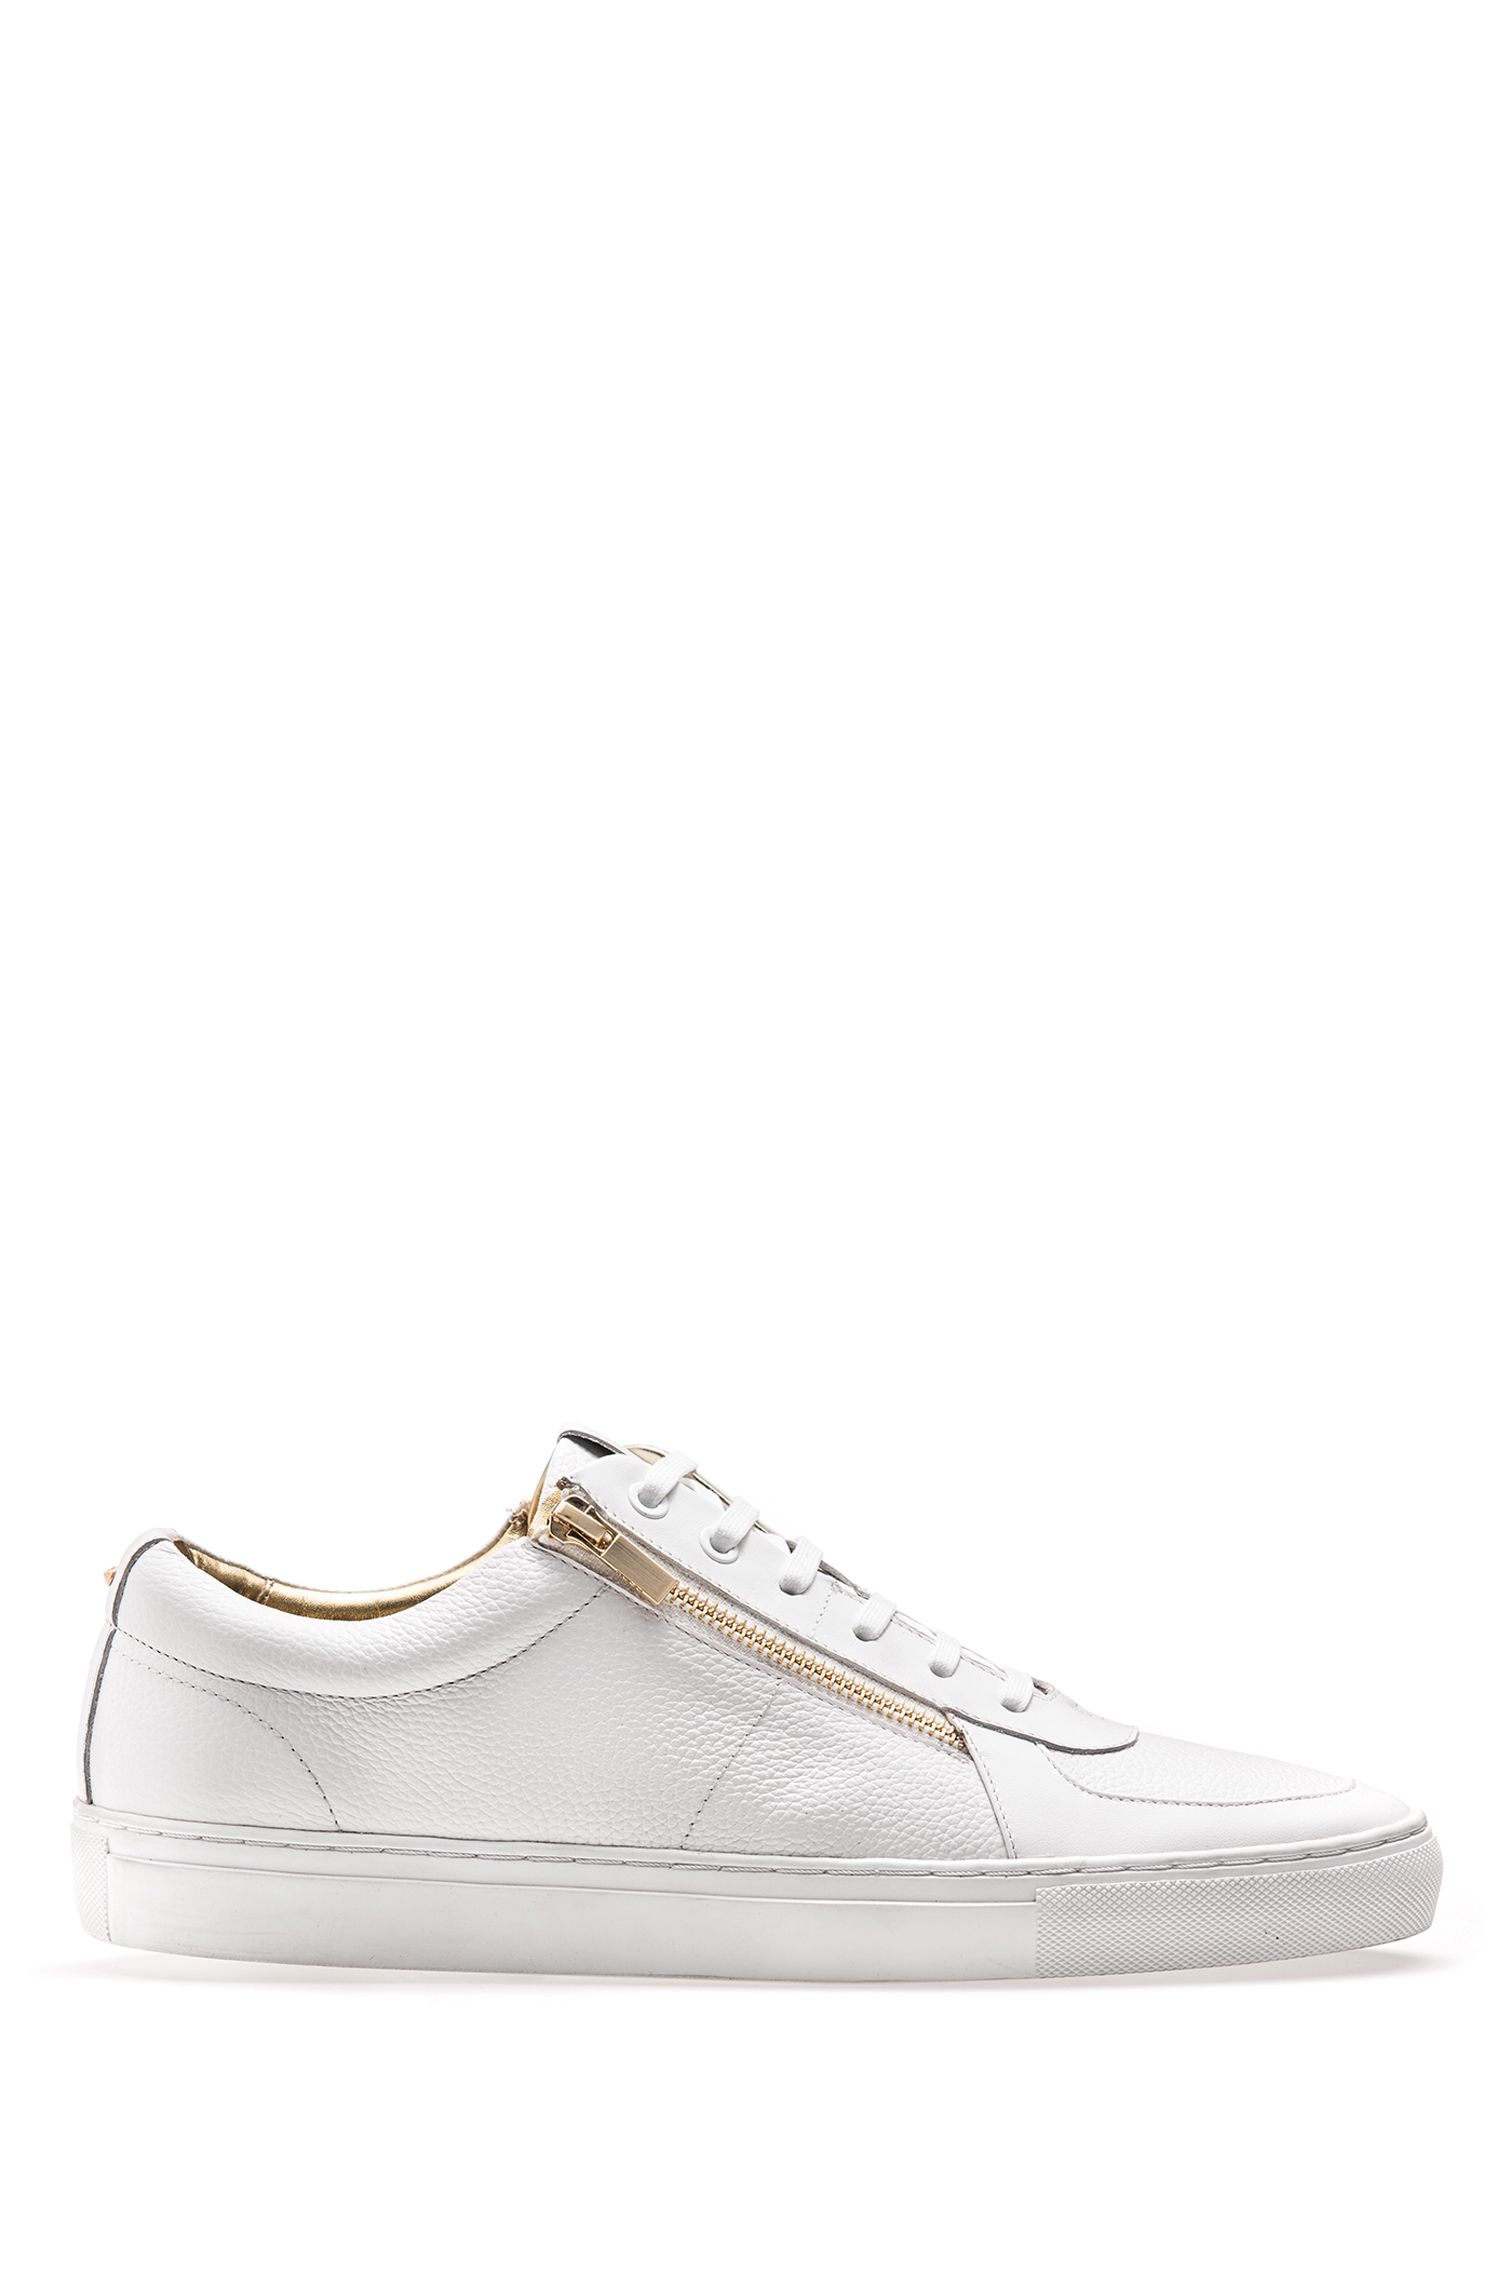 Sneakers low-top in pelle nappa e pelle martellata con doppia zip